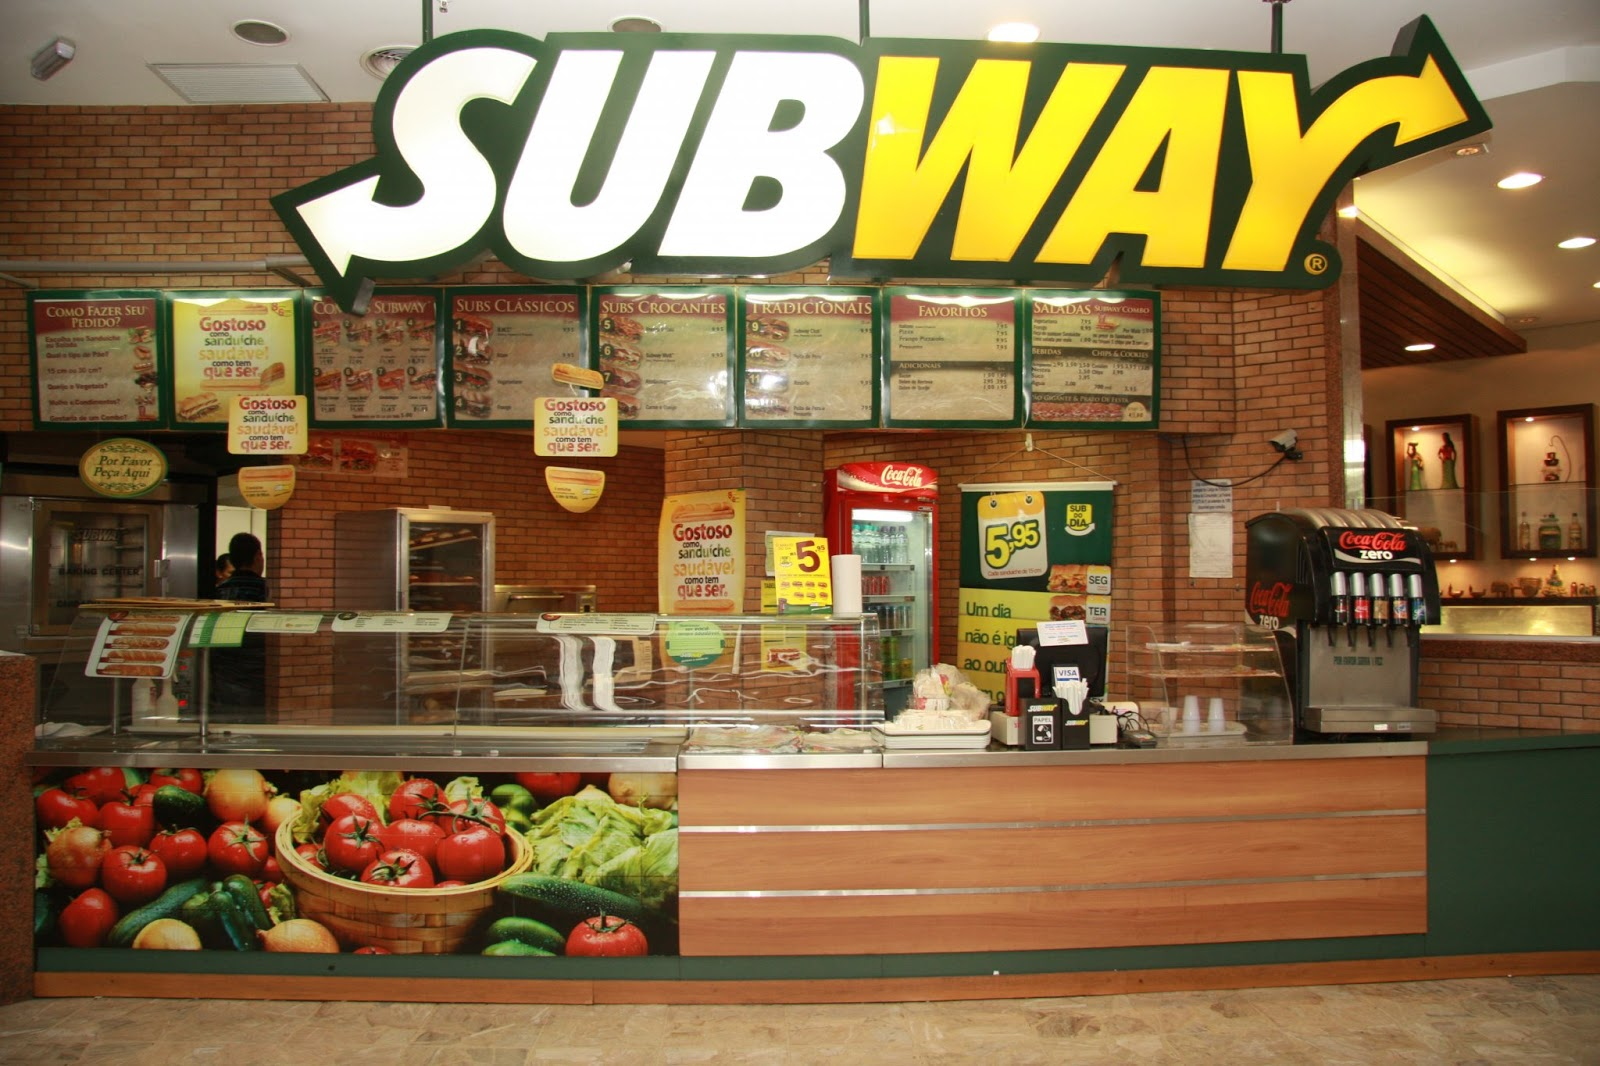 subway supply and demand We have compiled the major differences between demand and supply in economics, the two most important terms of micro economics the first difference between the two is demand is the willingness and paying capacity of a buyer at a specific price while the supply is the quantity offered by the.